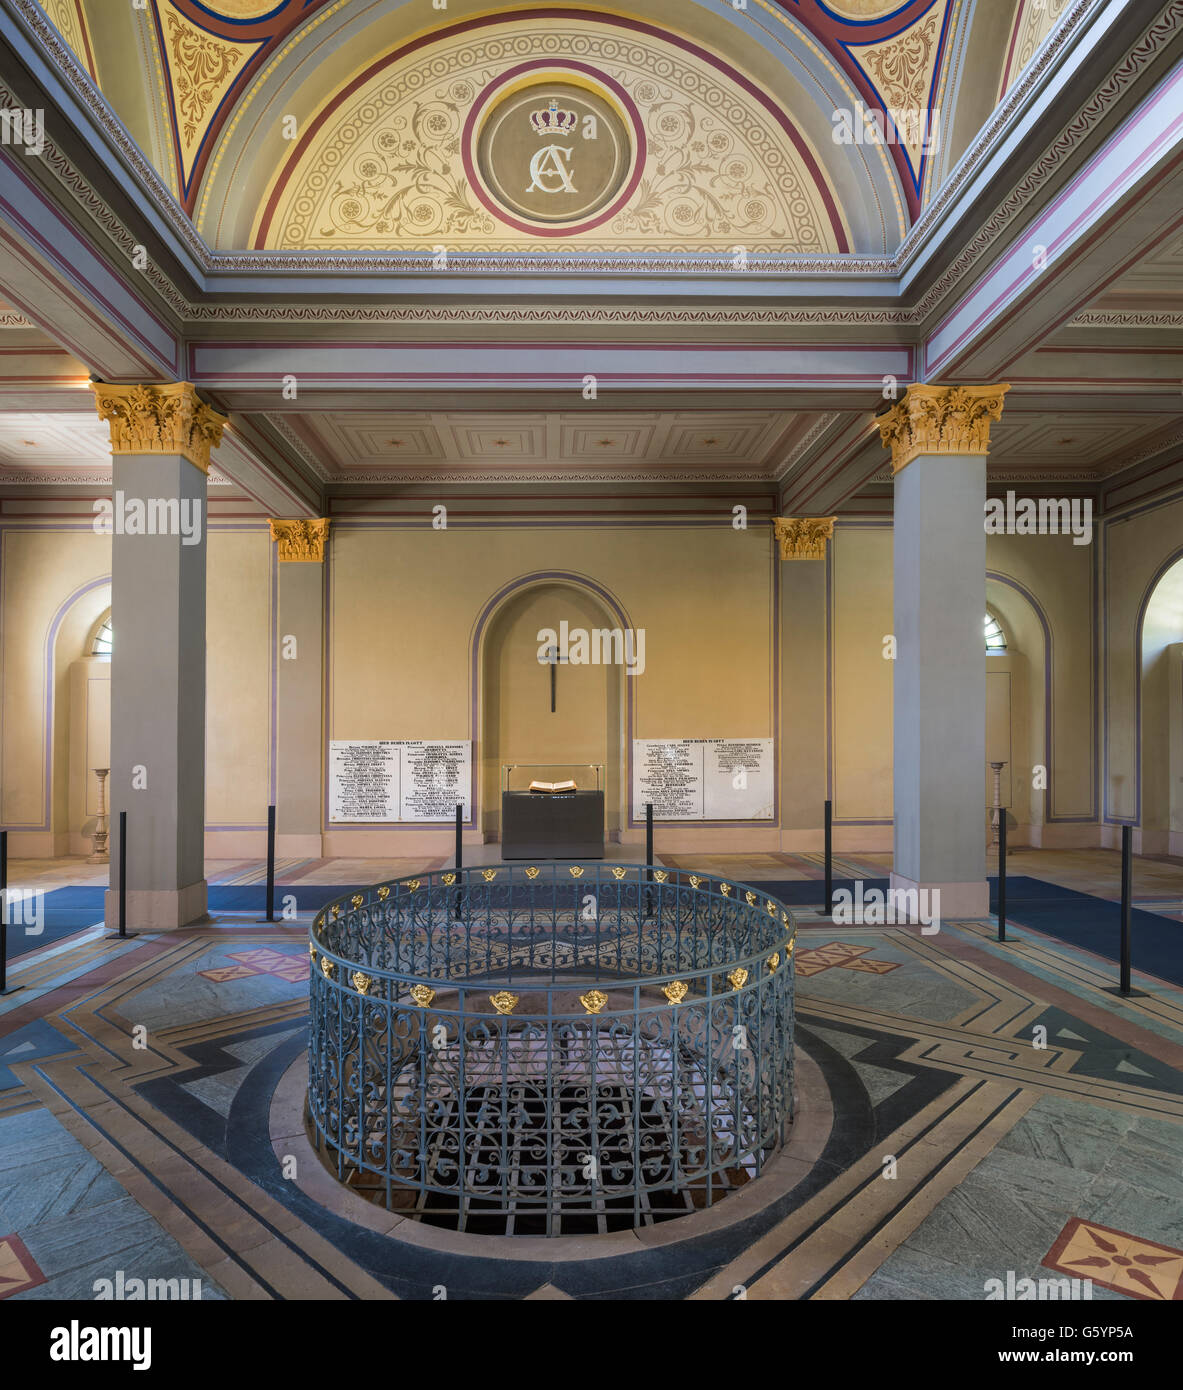 Hall of royal crypt, Fürstengruft, 1825, Classicism, historical cemetery, Weimar, Thuringia, Germany - Stock Image